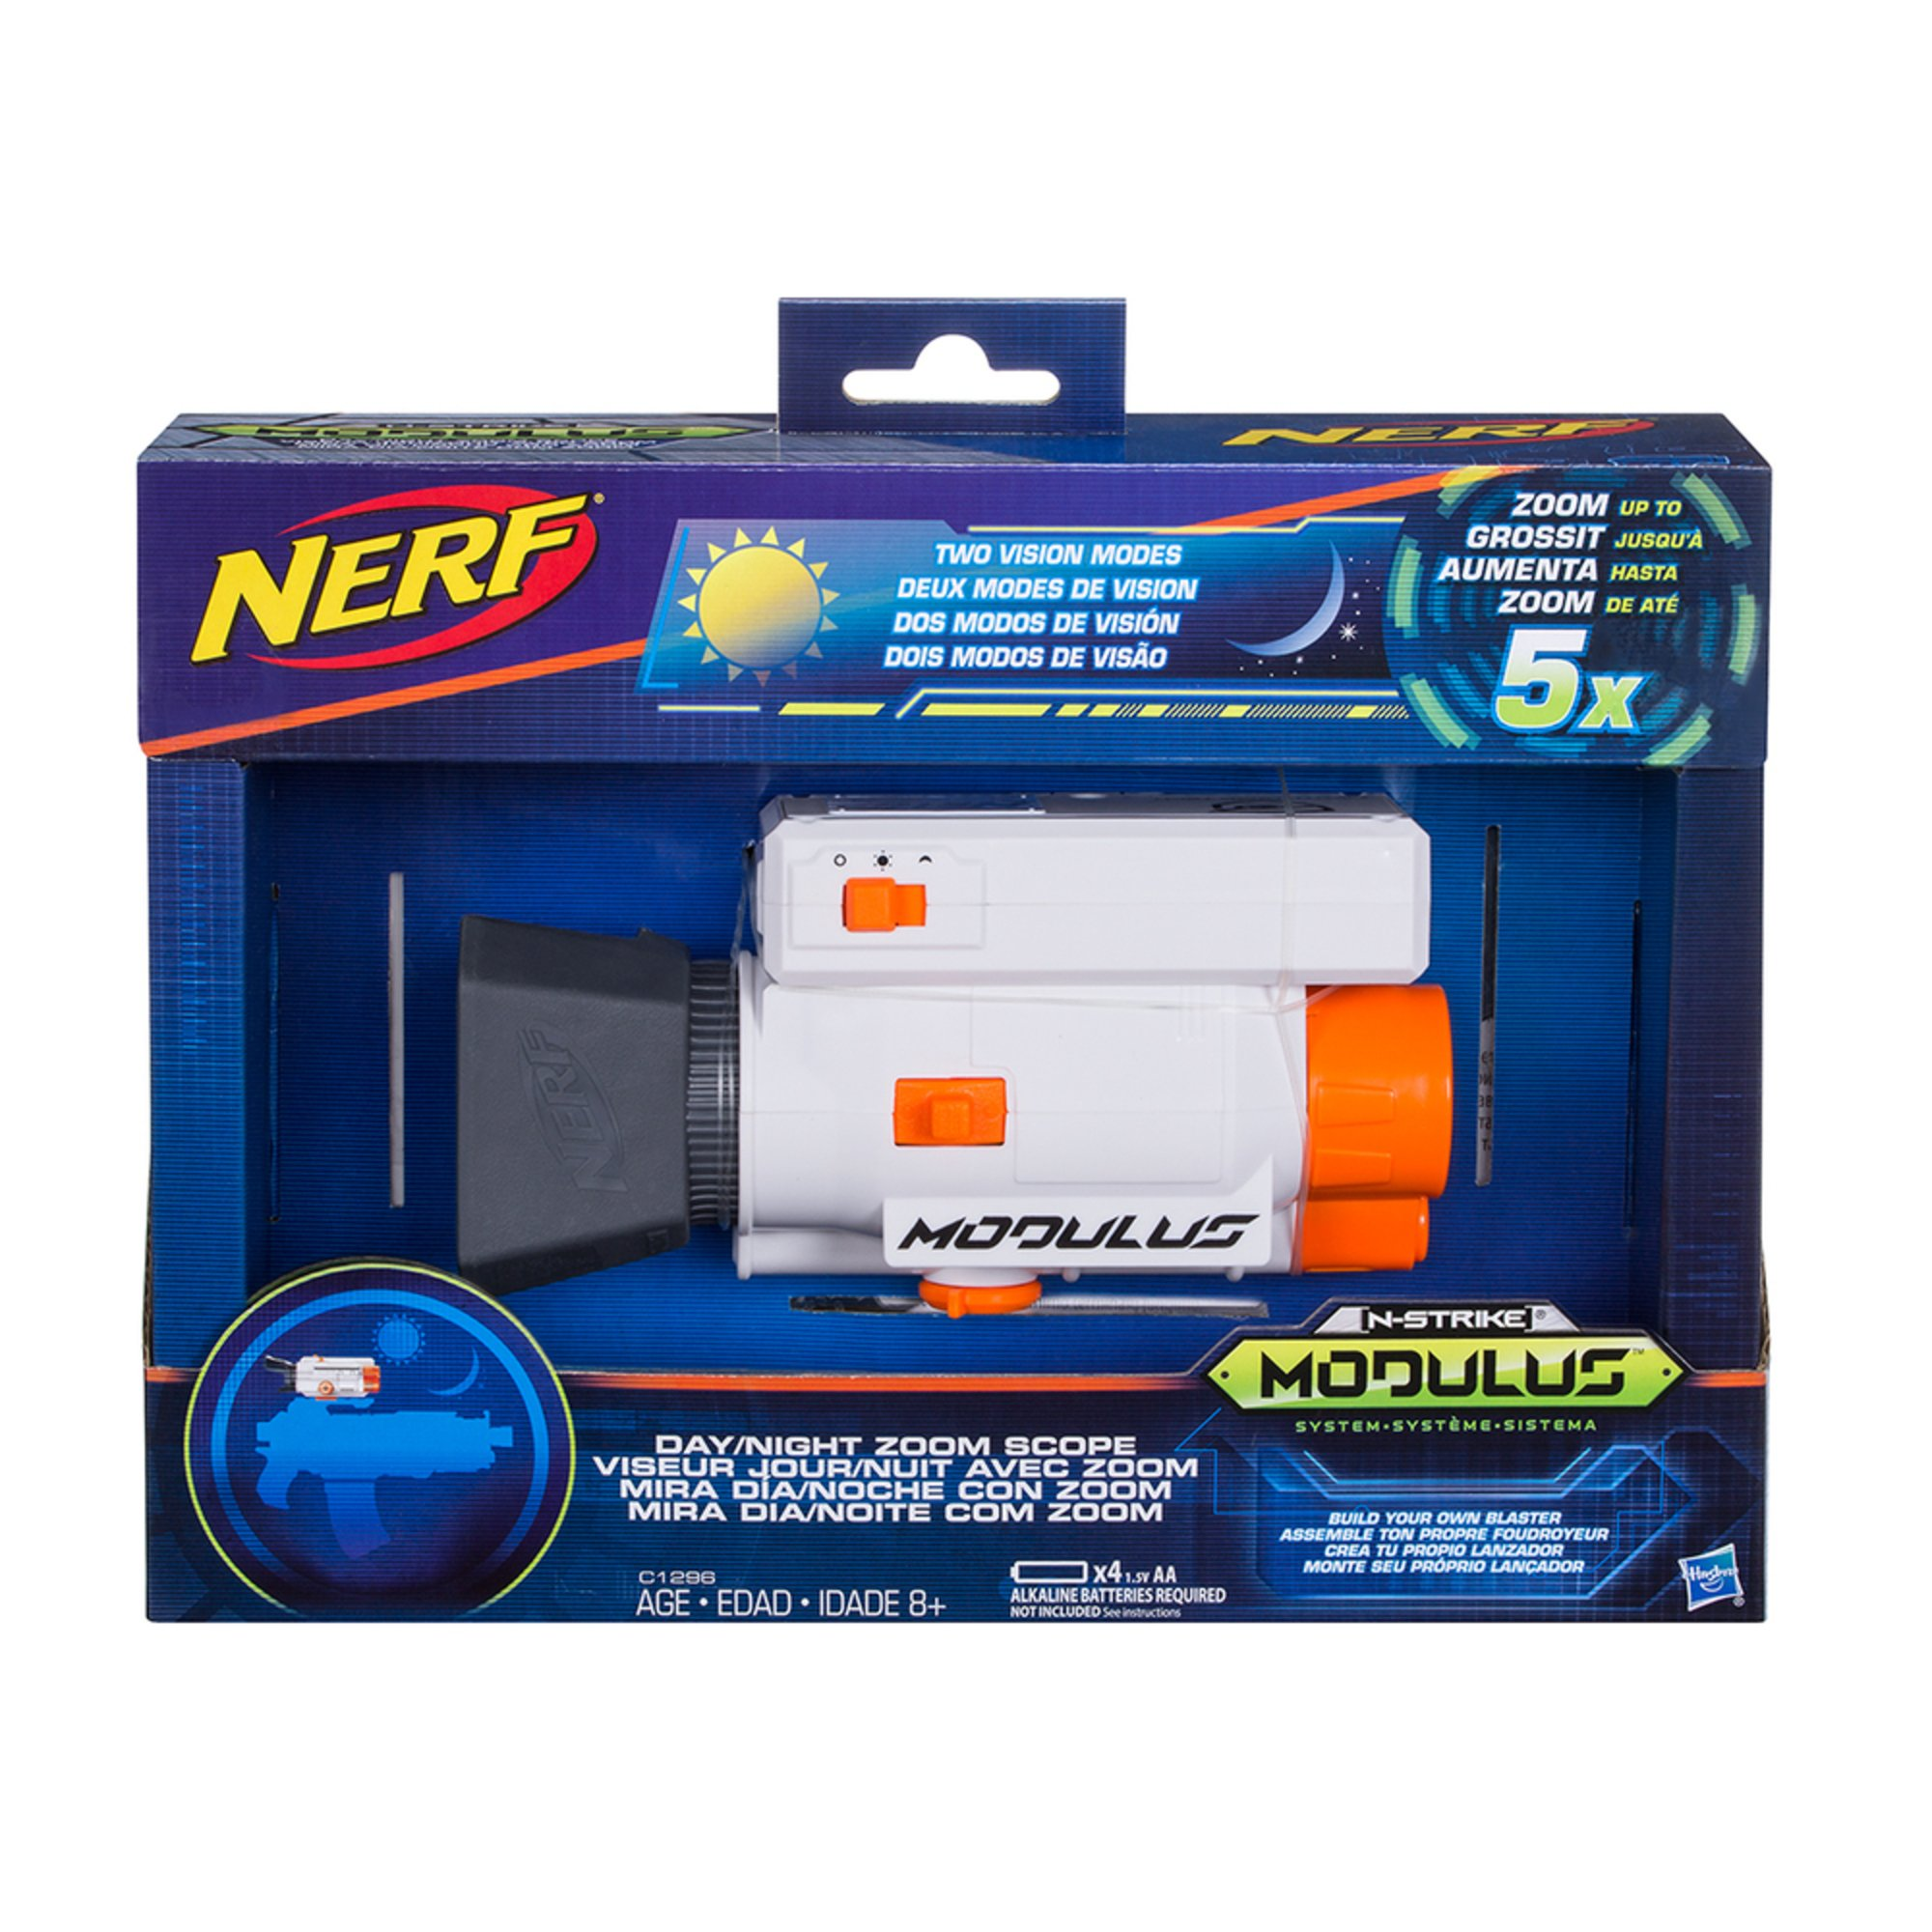 Nerf Modulus Day Night Vision Scope | Toy Blasters | Baby, Kids ...